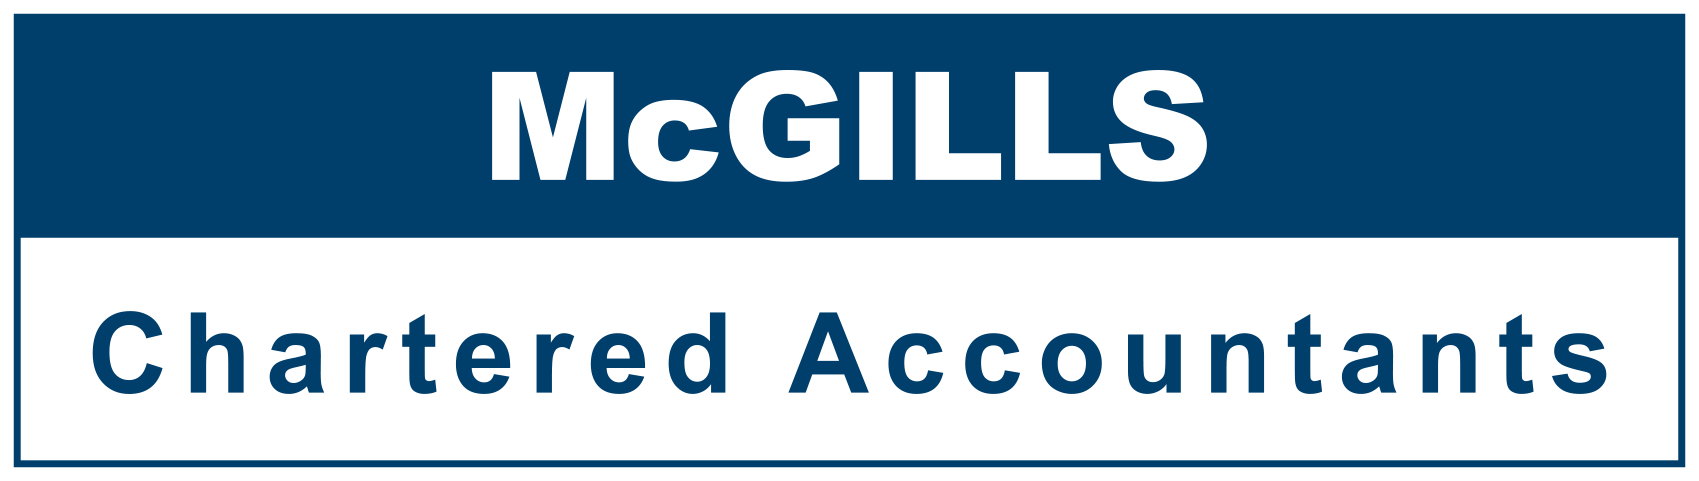 Calmsden Events Sponsored by McGills Chartered Accountants